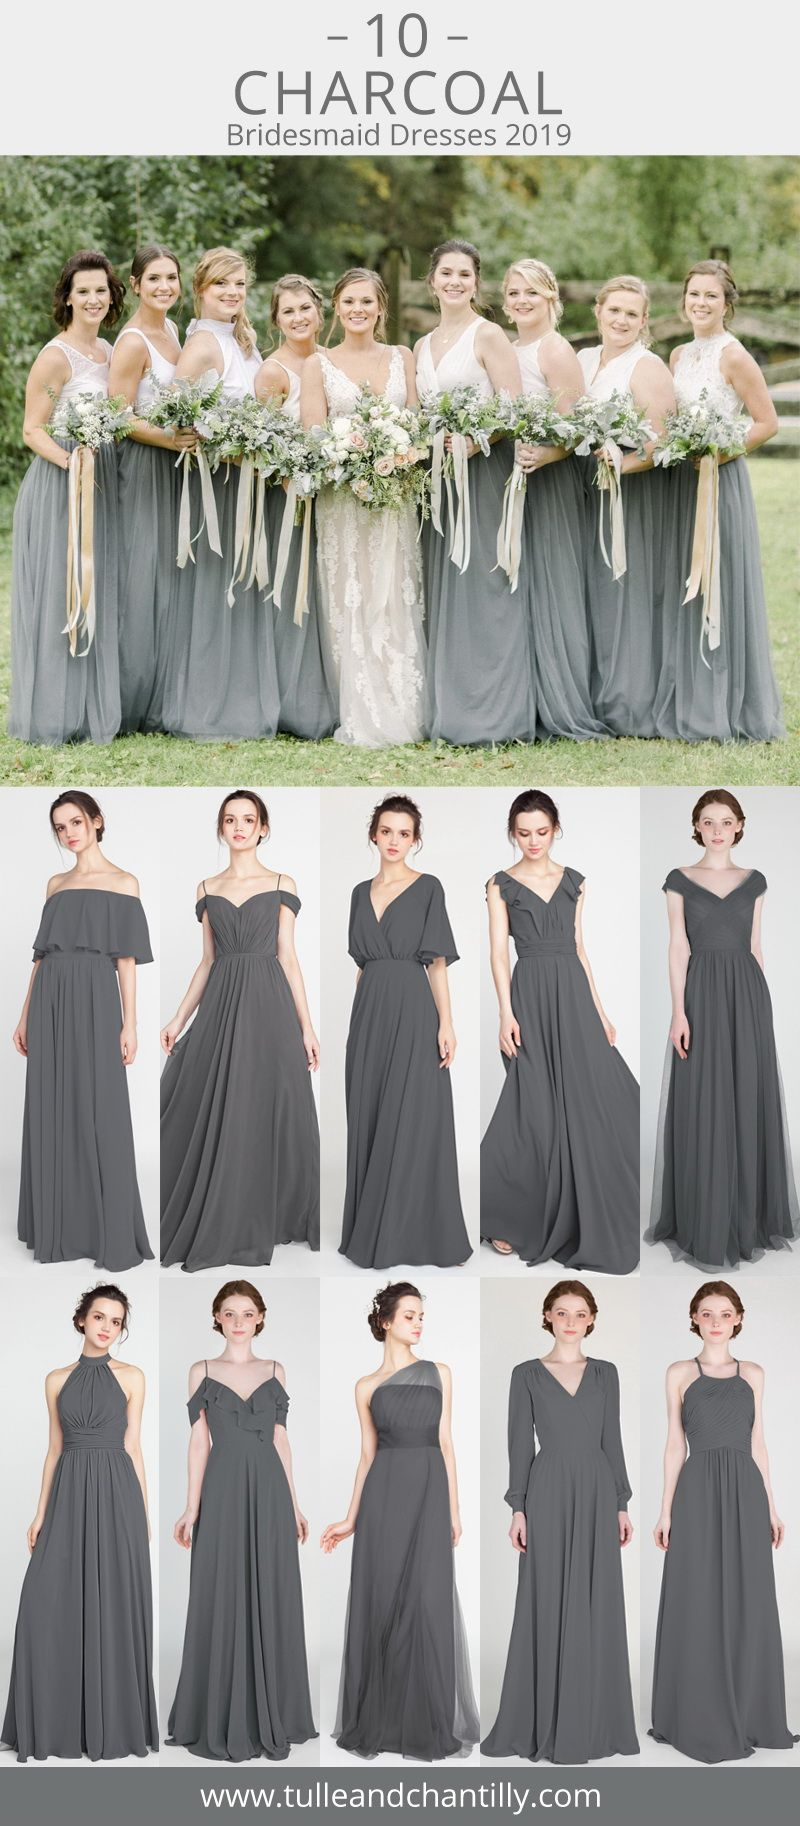 19+ Charcoal bridesmaid dresses long ideas in 2021